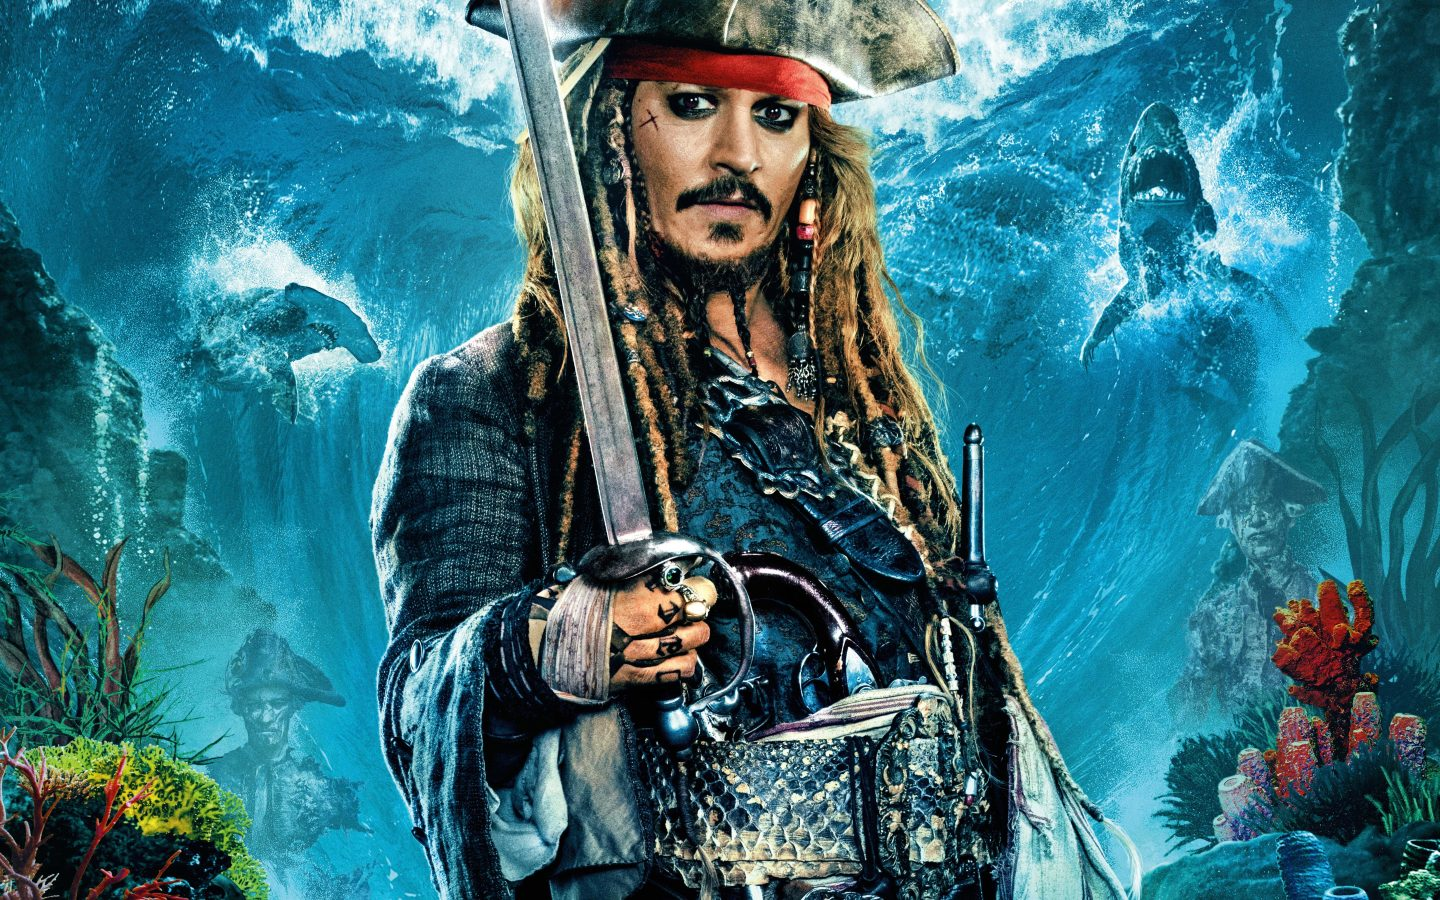 Johnny Depp As Jack Sparrow In Pirates Of The Caribbean